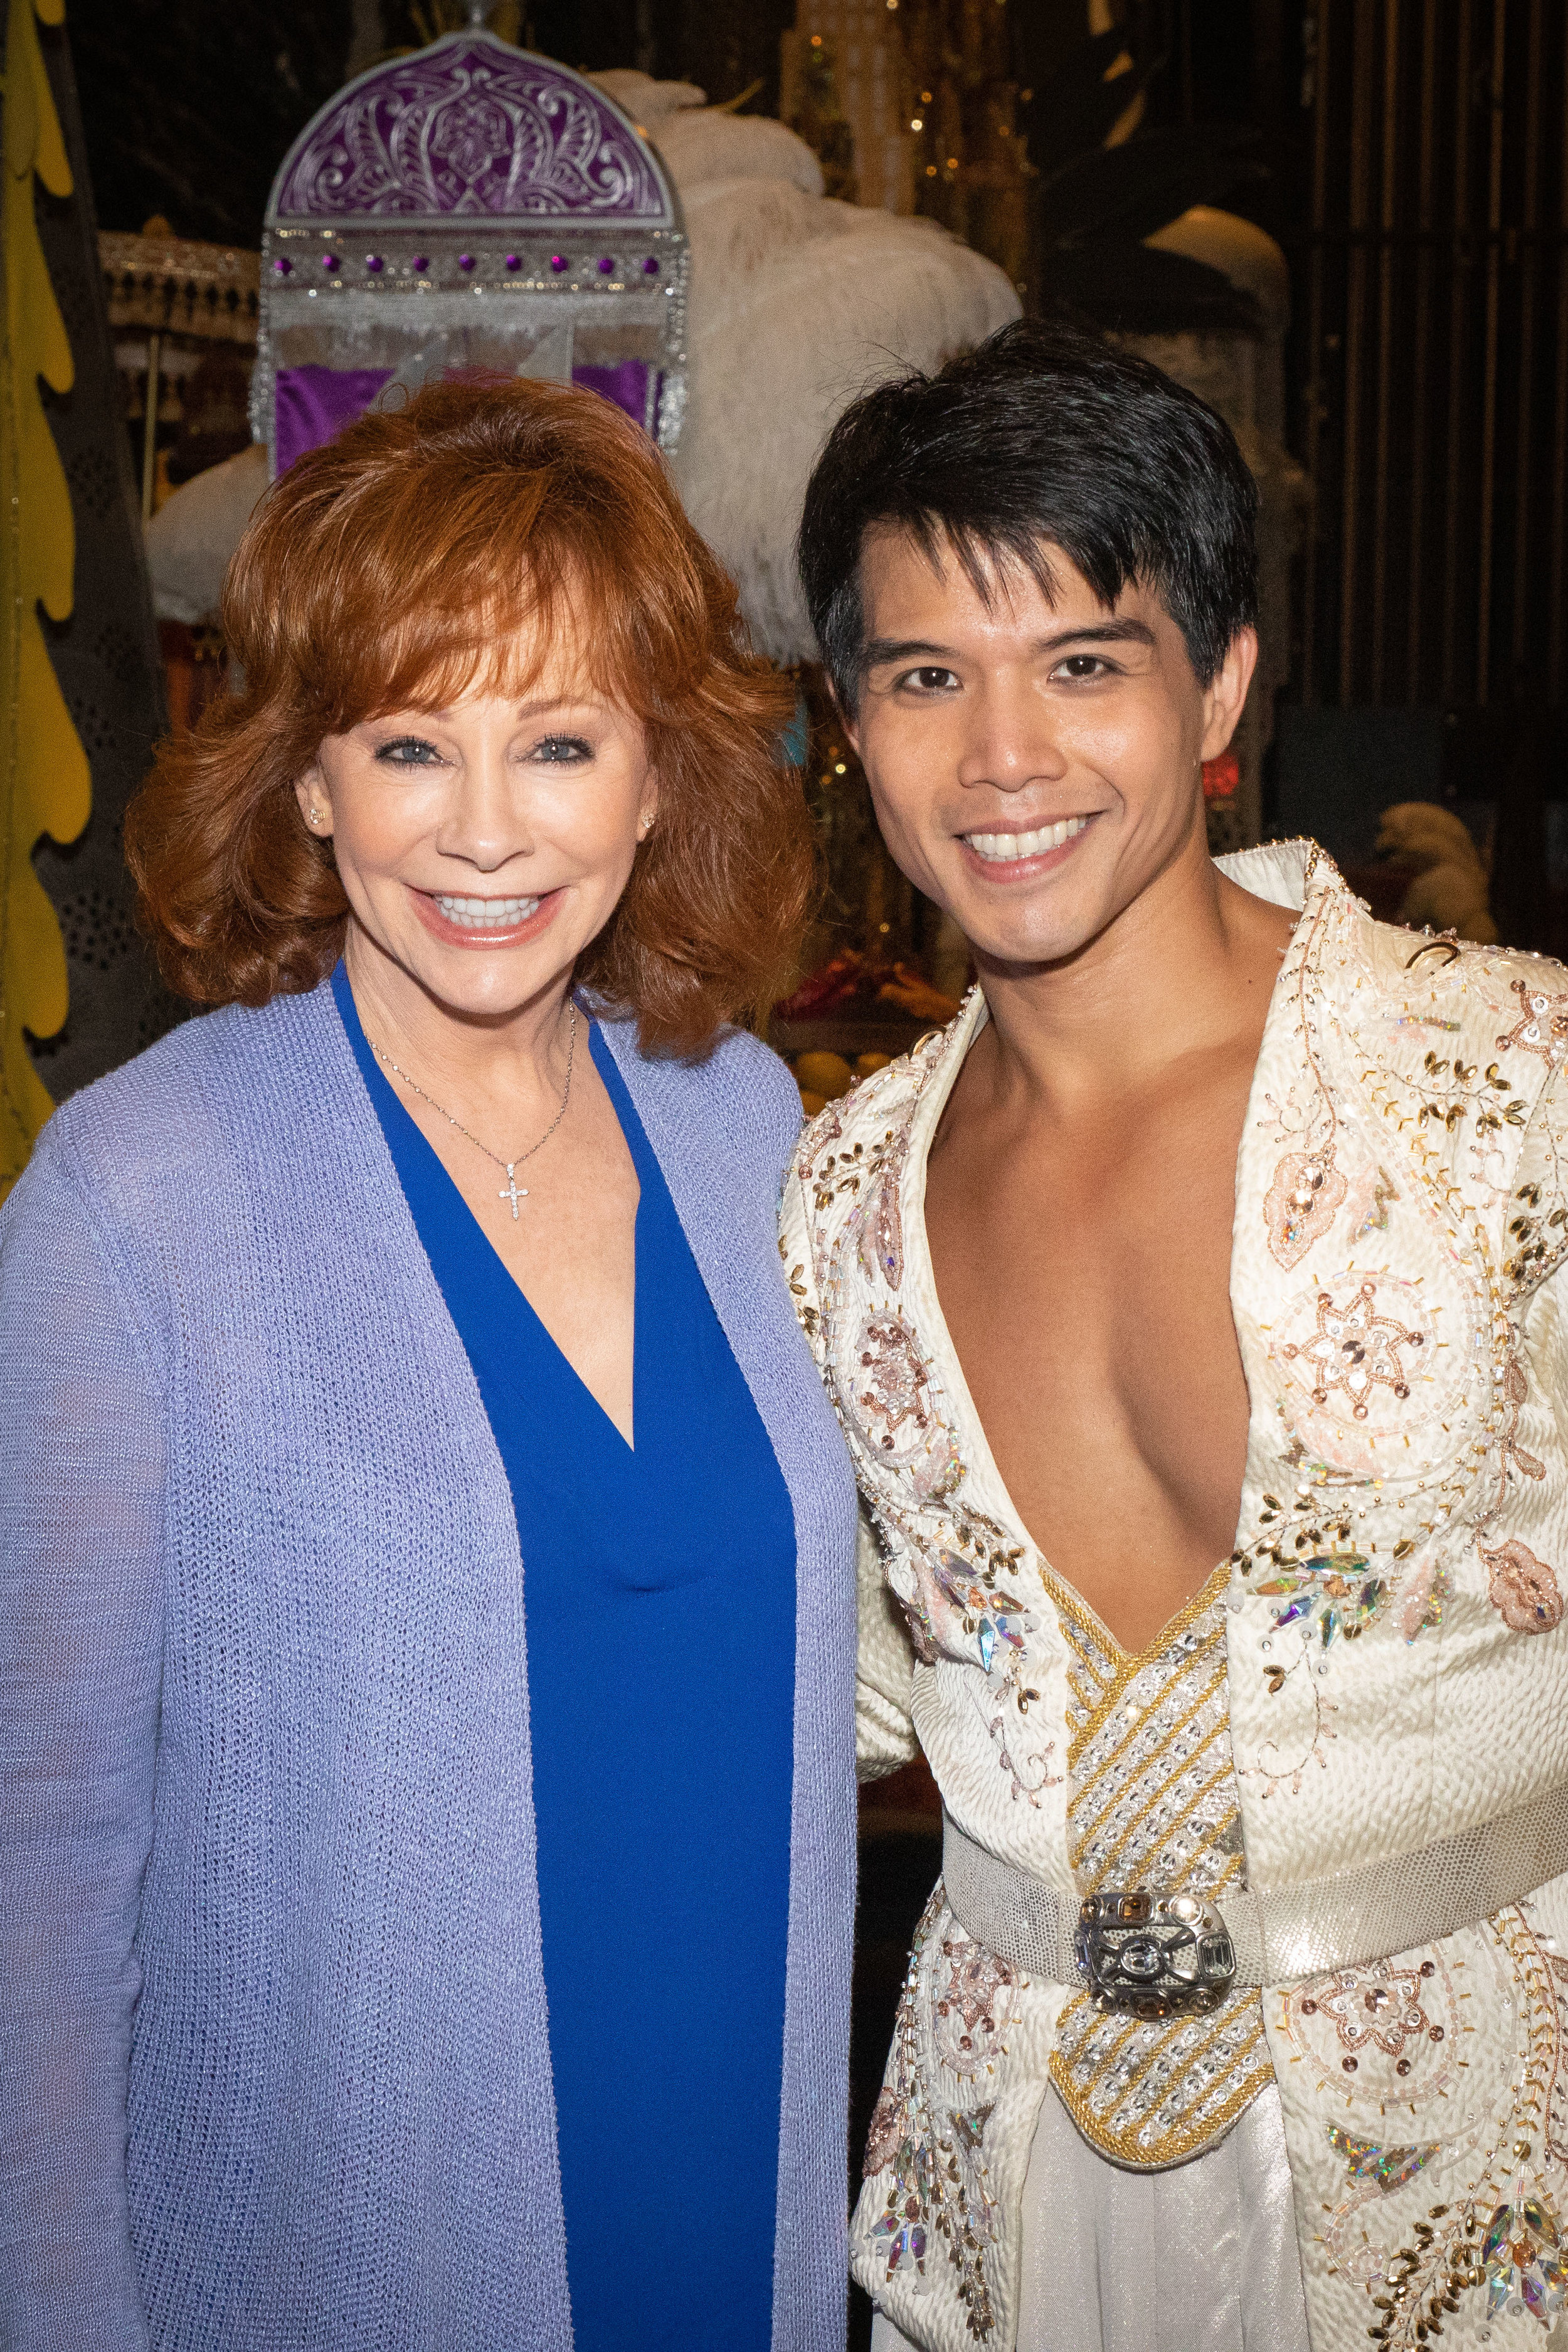 Reba McEntire and Telly Leung Backstage at Broadway's Aladdin - Photo by Shay Frey Courtesy Disney Theatrical Productions